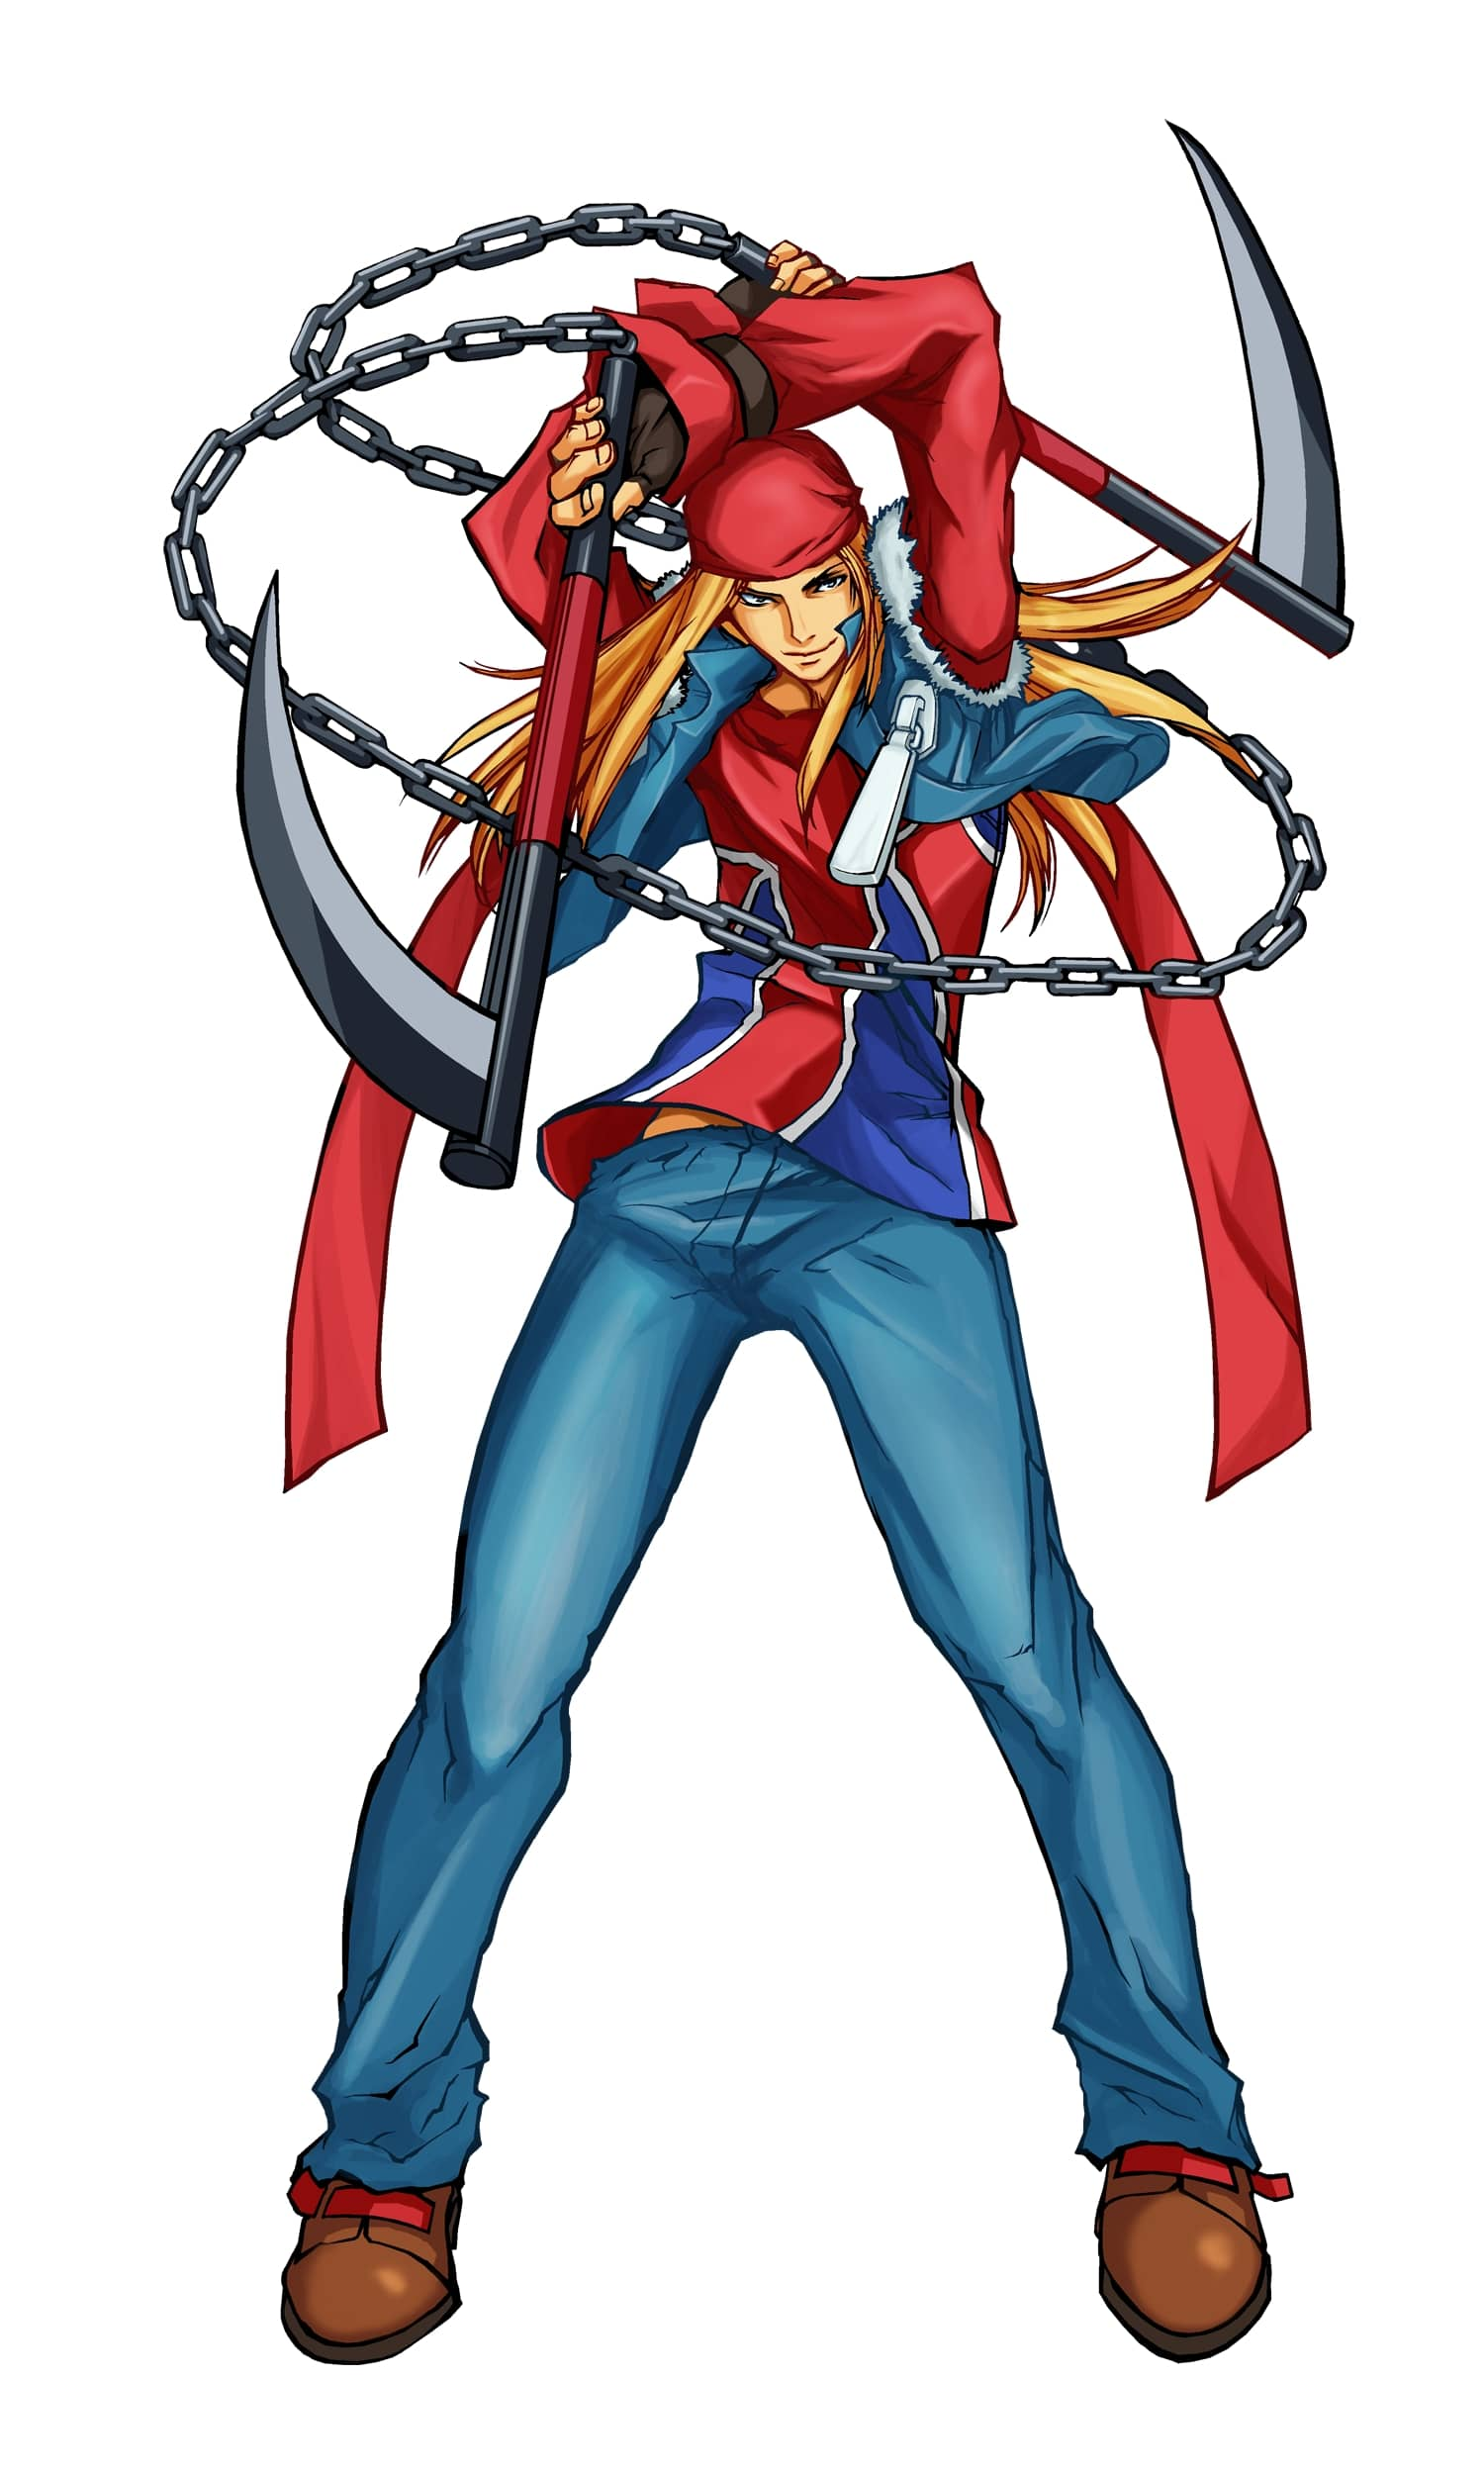 Guilty Gear: Axl Low Wallpapers